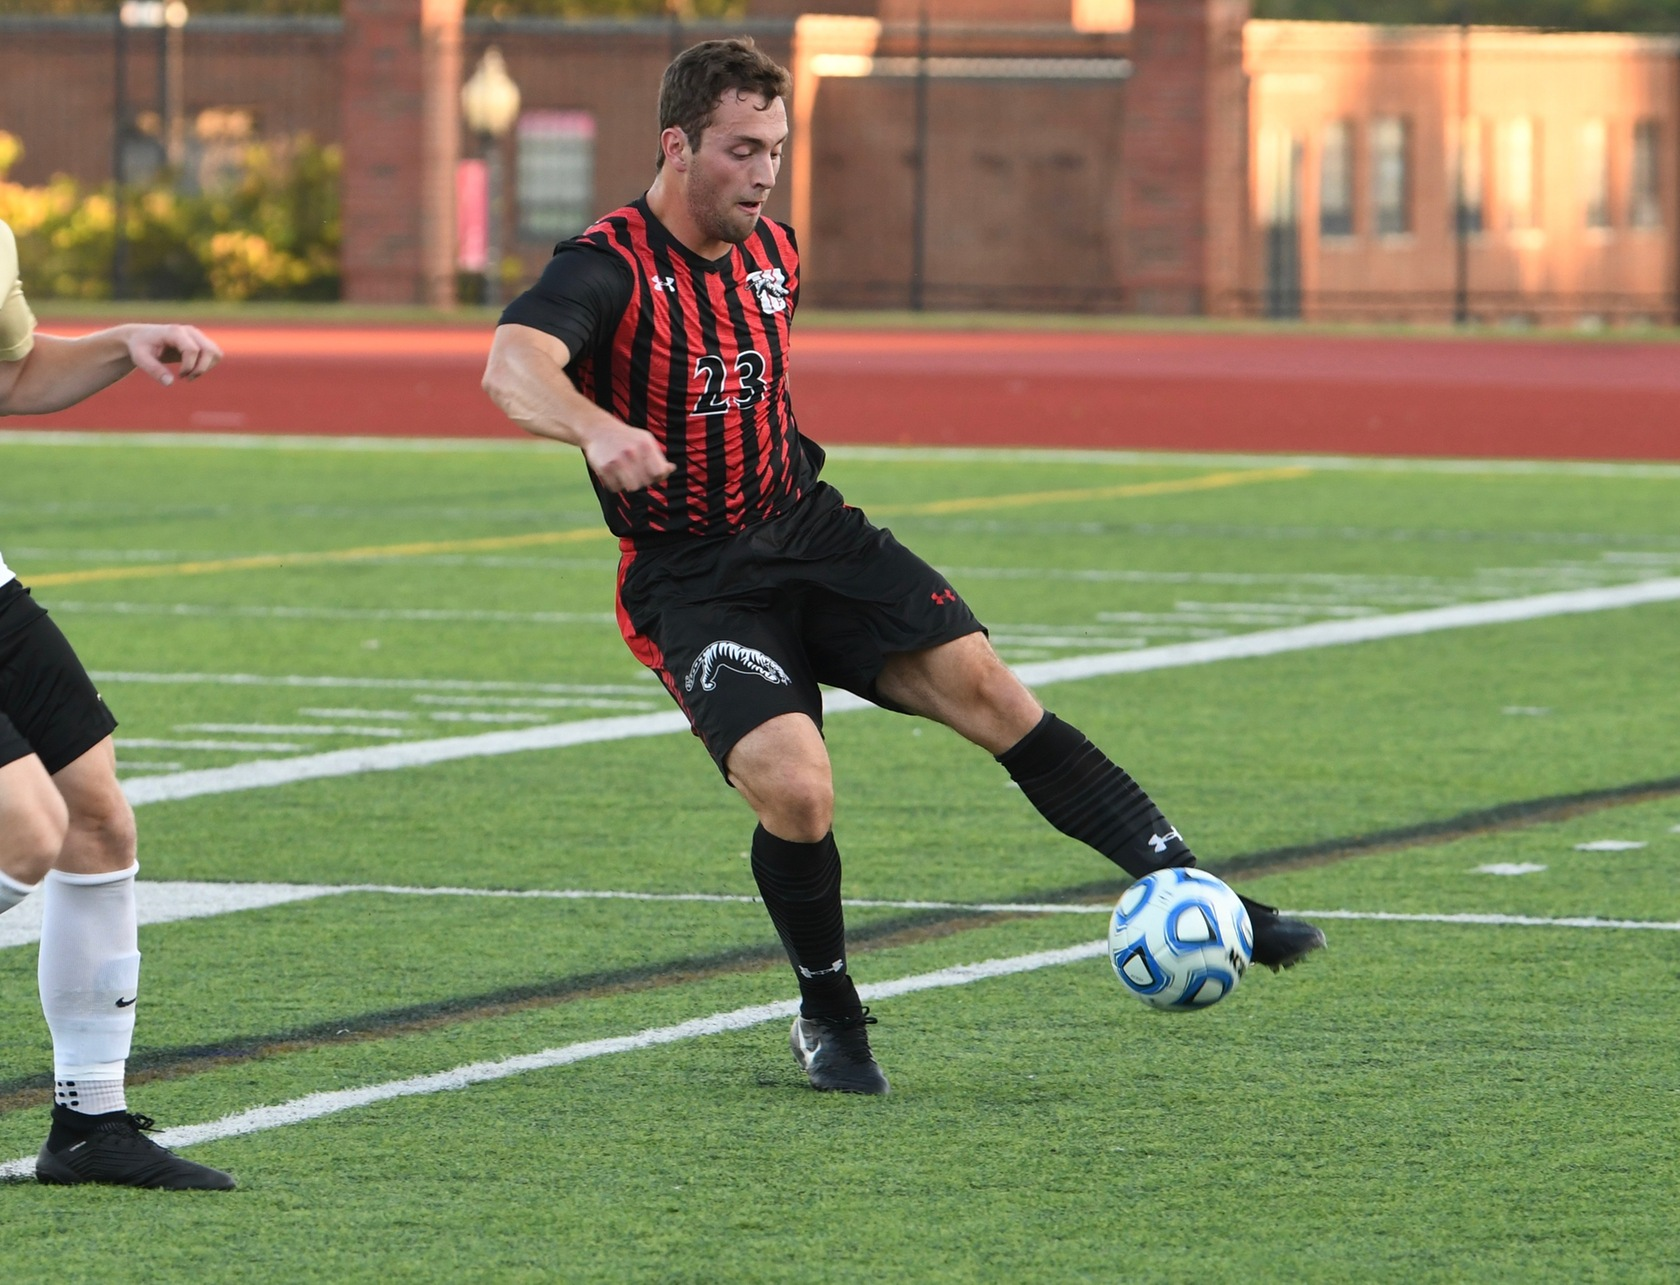 Senior Christian Randazzo and the Wittenberg men's soccer team dropped a 3-0 home decision against No. 22 Ohio Wesleyan on Tuesday night